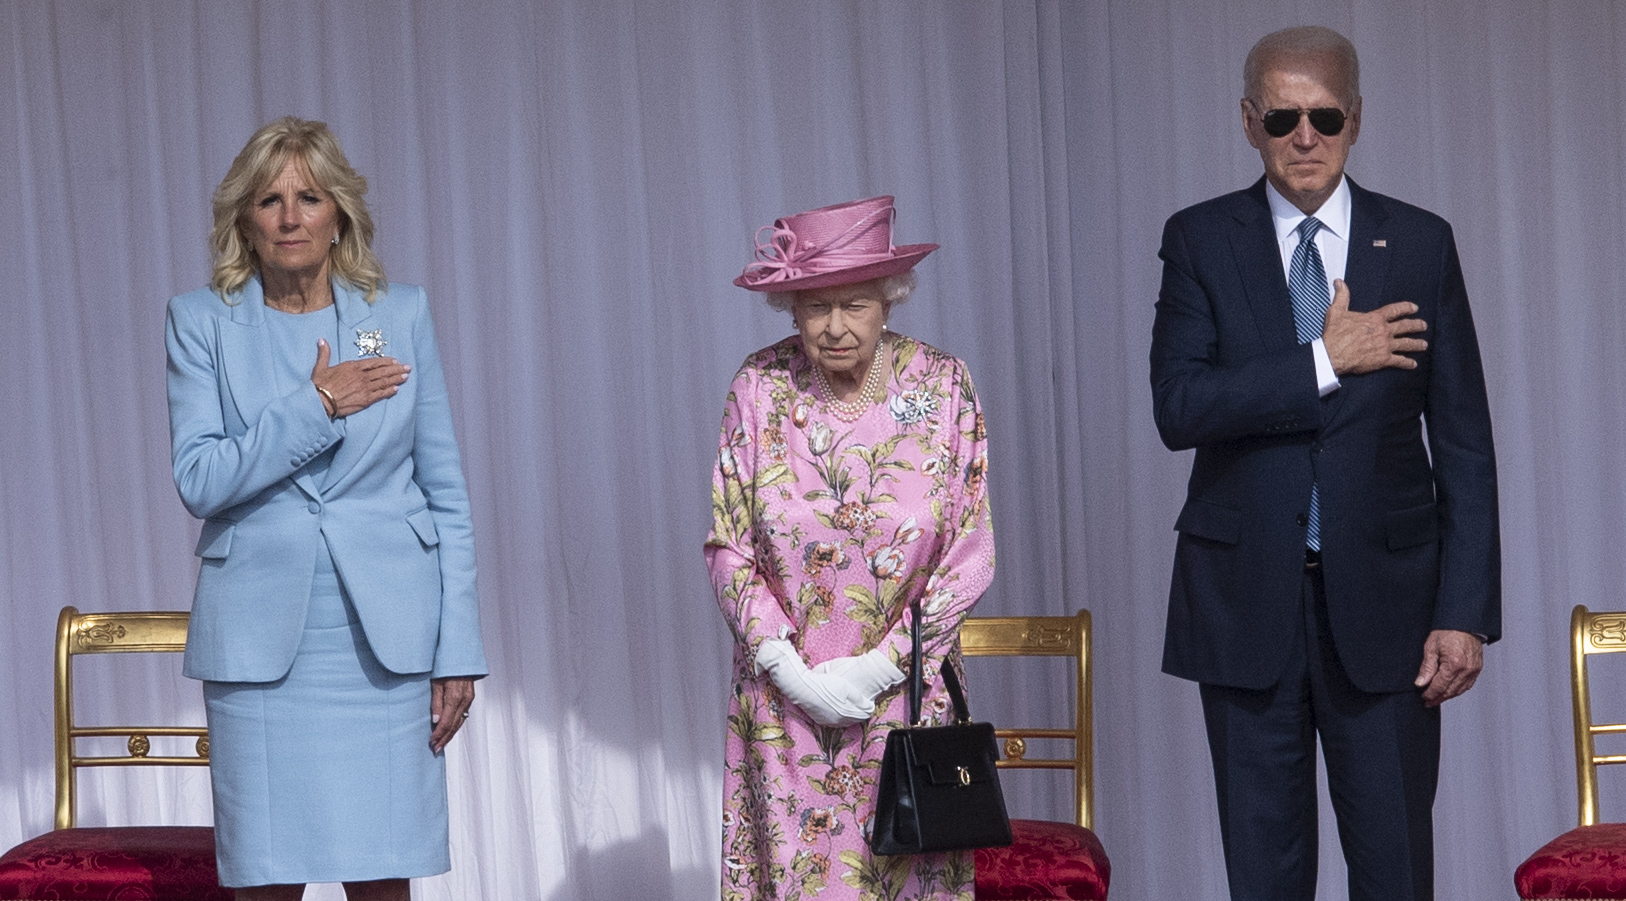 <p>WINDSOR, ENGLAND - JUNE 13:  Queen Elizabeth II with U.S. President Joe Biden and First Lady Jill Biden at Windsor Castle on June 13, 2021 in Windsor, England.  Queen Elizabeth II hosts US President, Joe Biden and First Lady Dr Jill Biden at Windsor Castle. The President arrived from Cornwall where he attended the G7 Leader's Summit and will travel on to Brussels for a meeting of NATO Allies and later in the week he will meet President of Russia, Vladimir Putin.  (Photo by UK Press Pool/UK Press via Getty Images)</p>